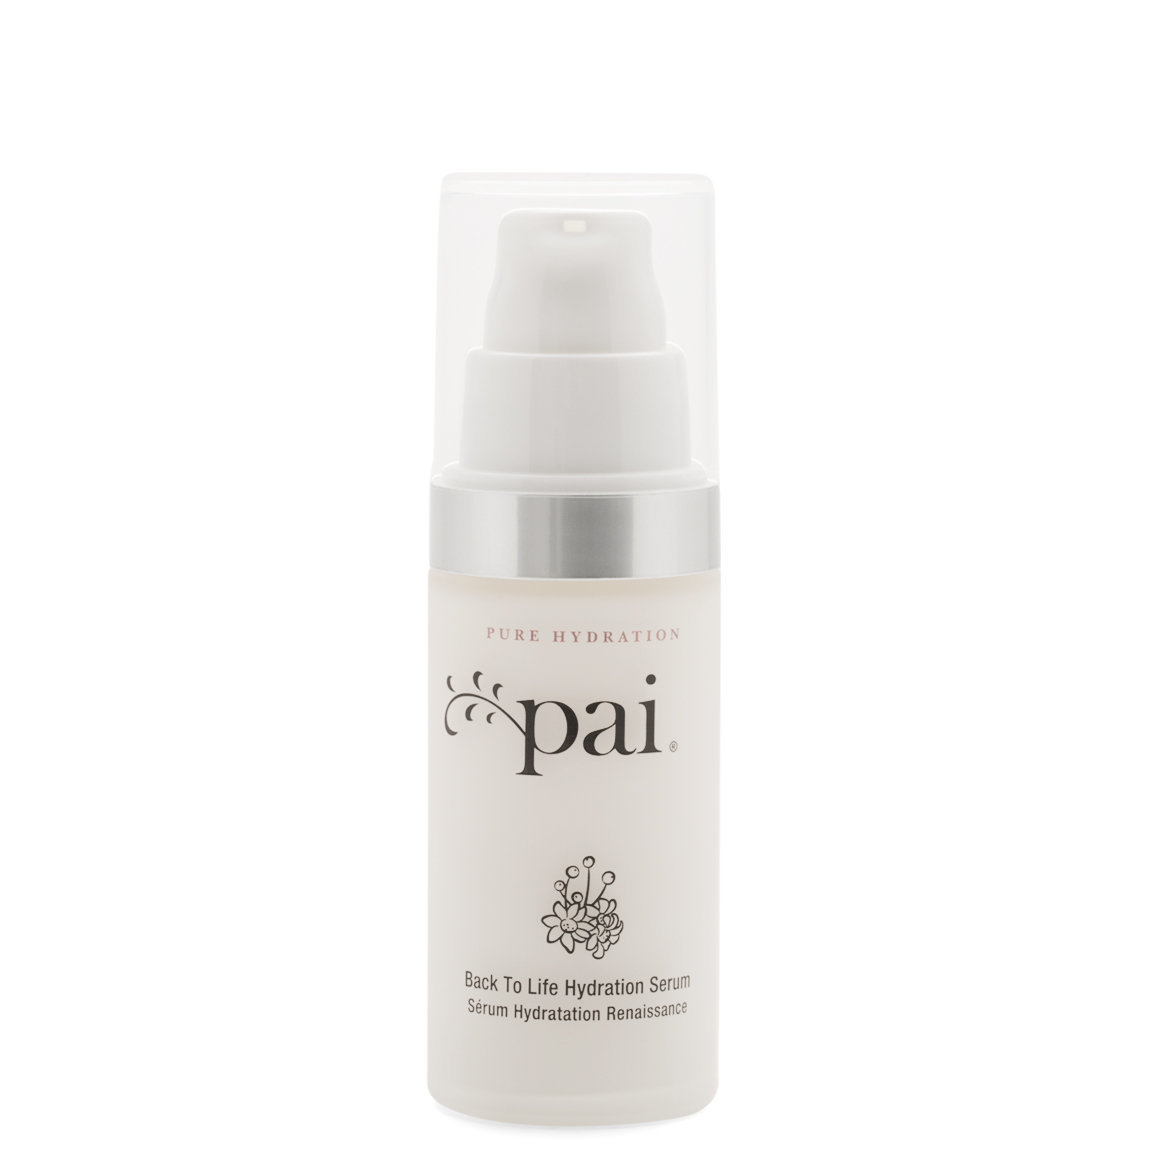 Pai Skincare Back To Life Hydration Serum Back To Life Hydration Serum product smear.